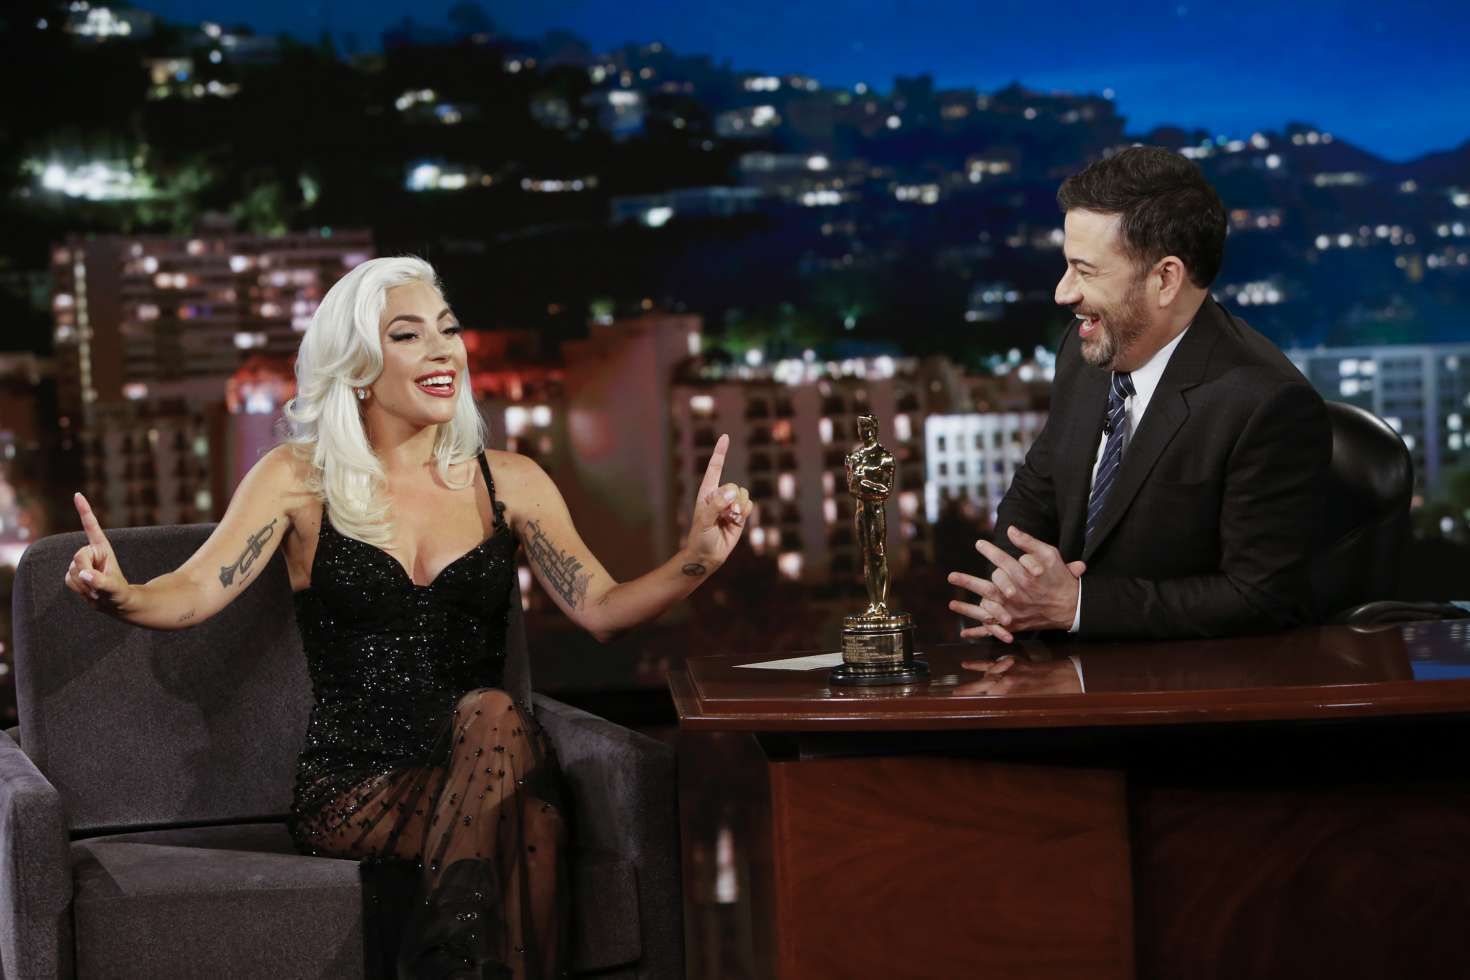 Lady Gaga with tattoos on hands at the Jimmy Kimmel Live in LA, 2019